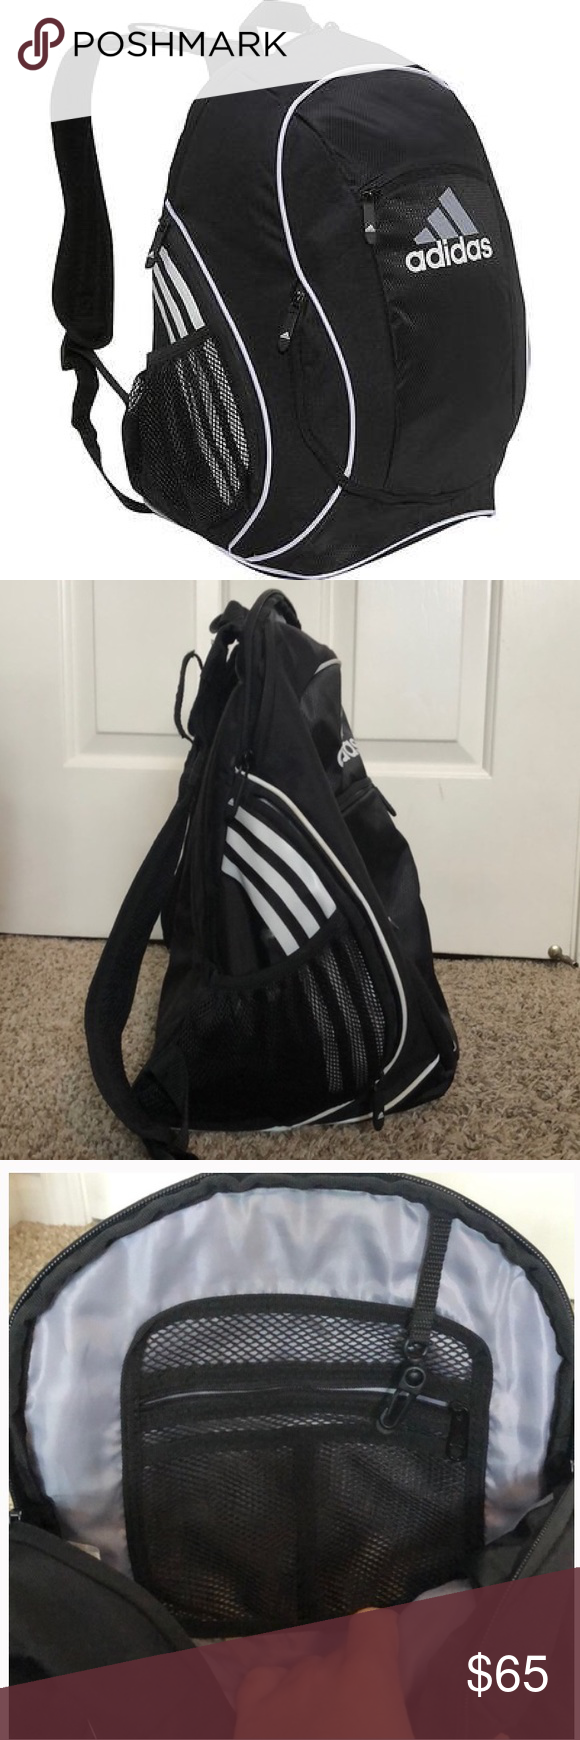 38b4c68f9c84 adidas Estadio Team Backpack II I used this bag when I played on the high  school